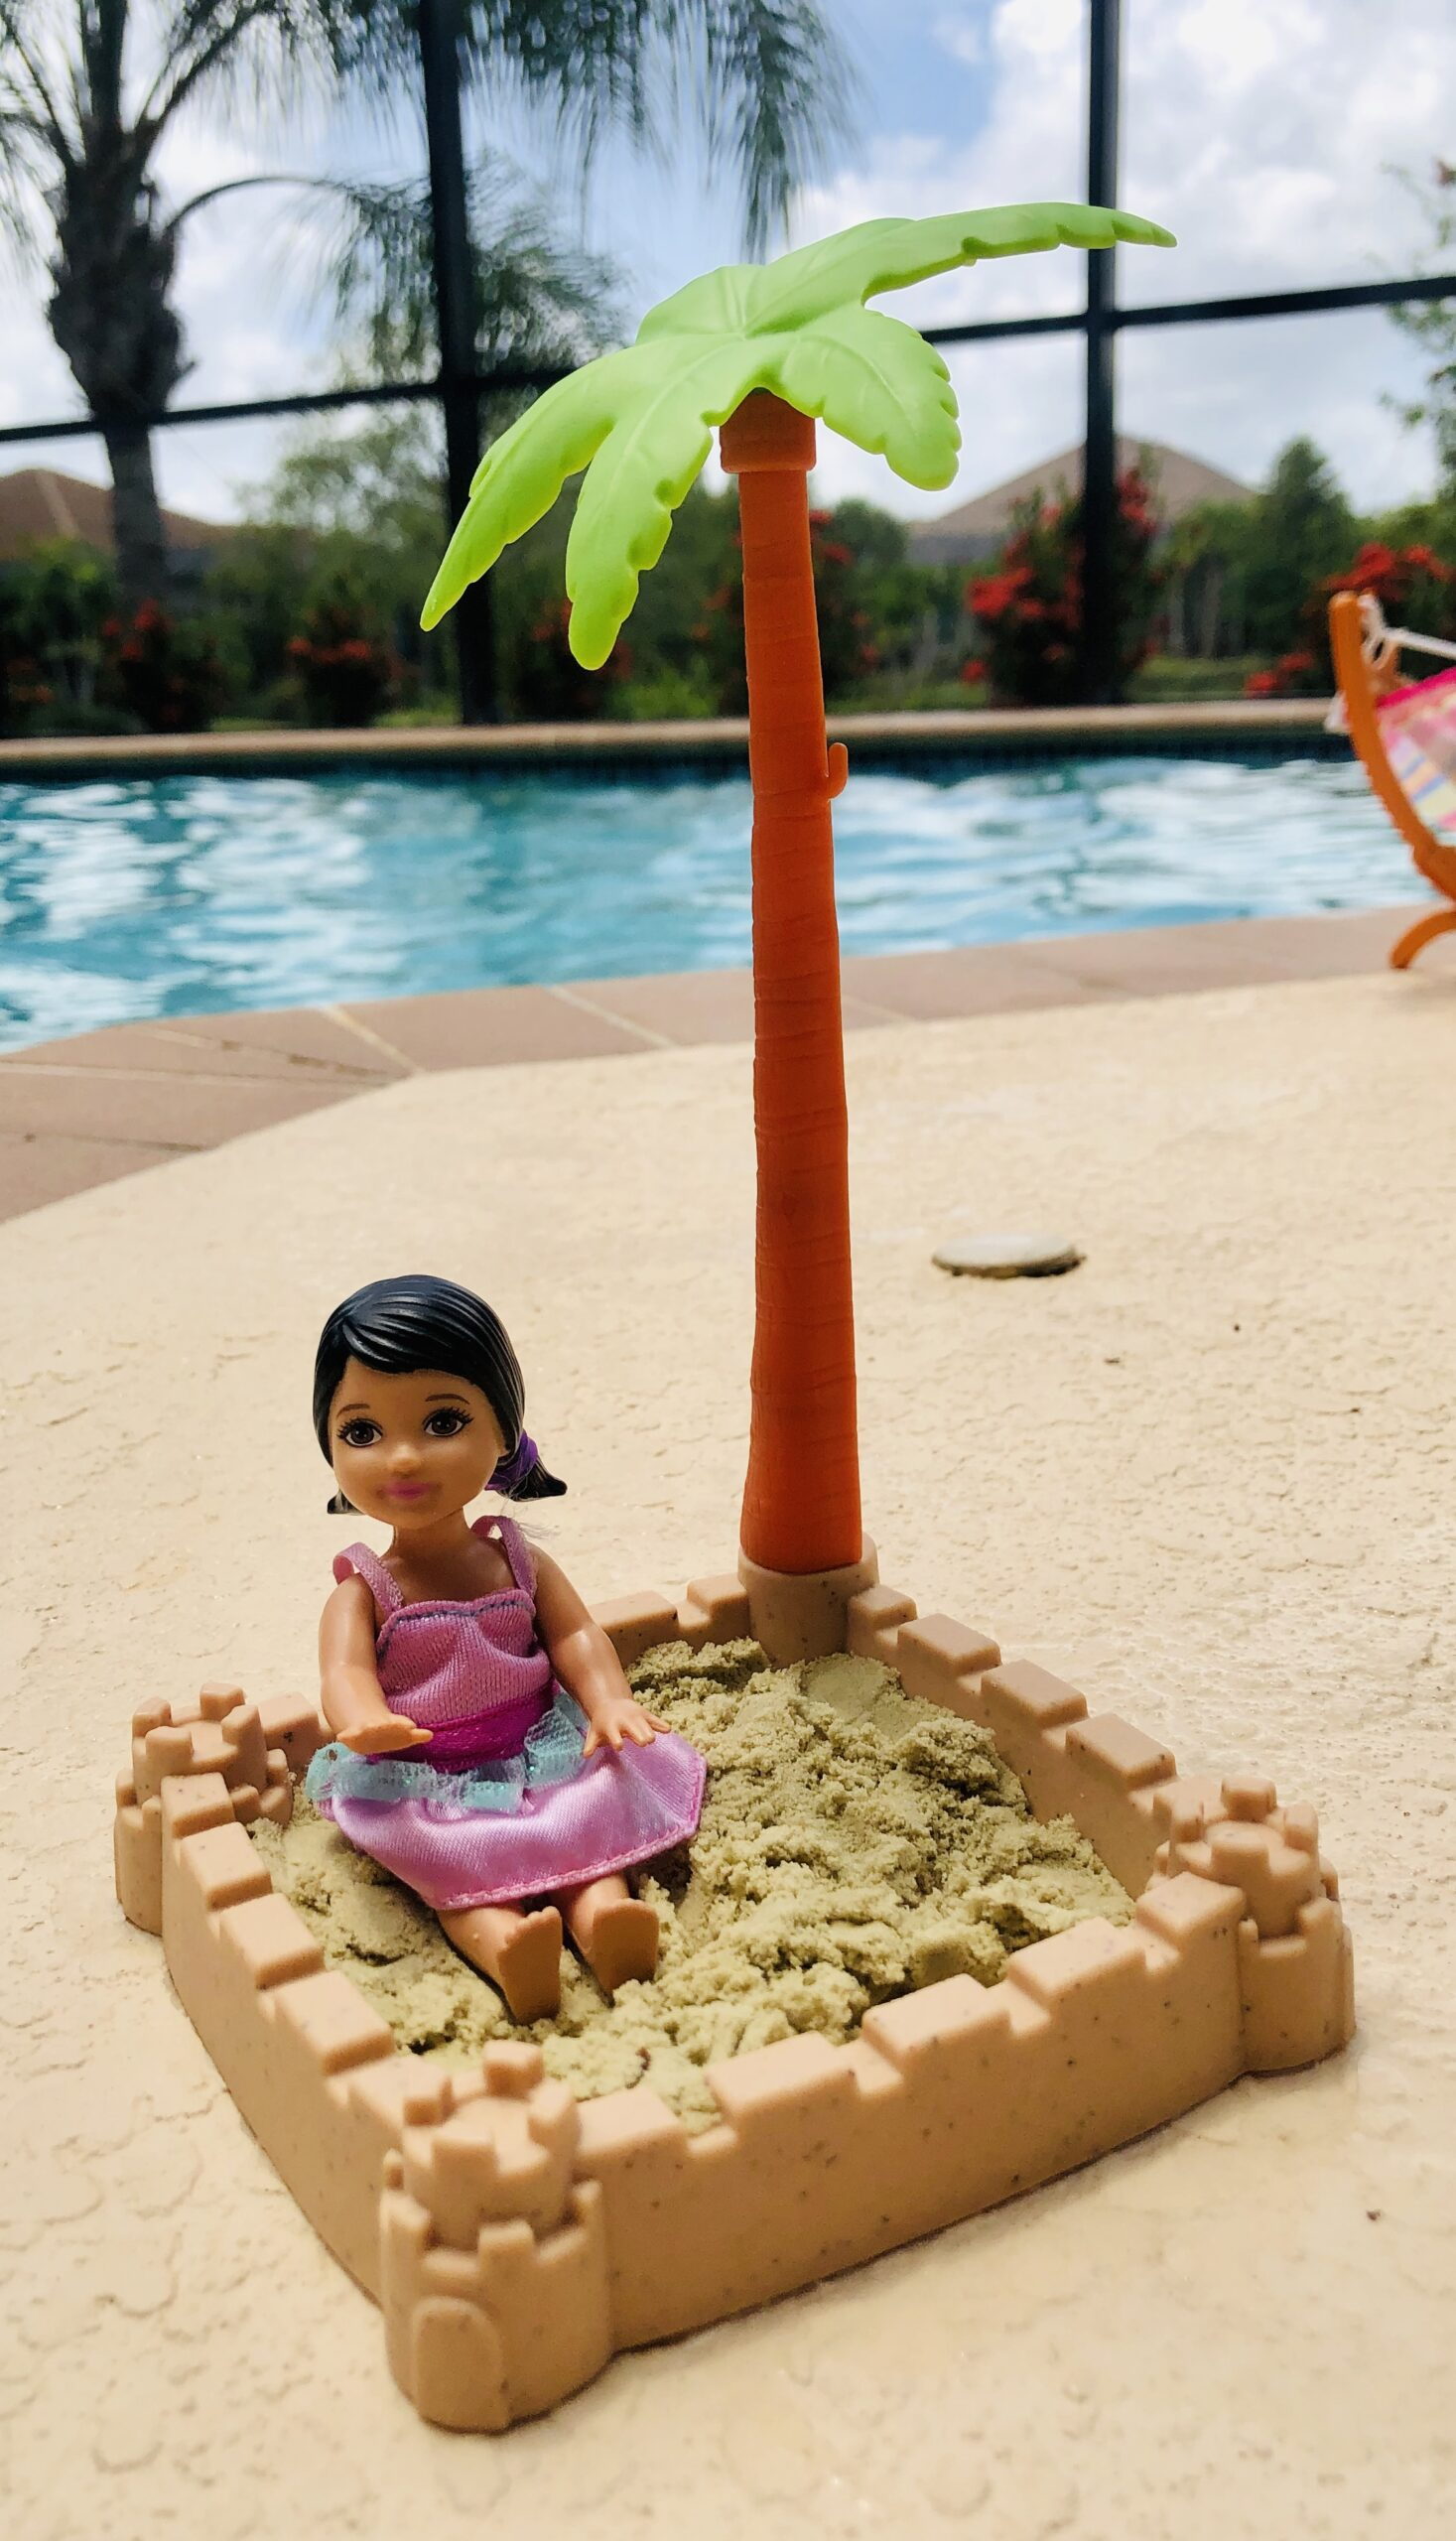 A Baby Barbie Doll in a sandbox. It has a palm tree and real sand in it. It's for the Barbie Doll Story, Goodbye Costa Rica.